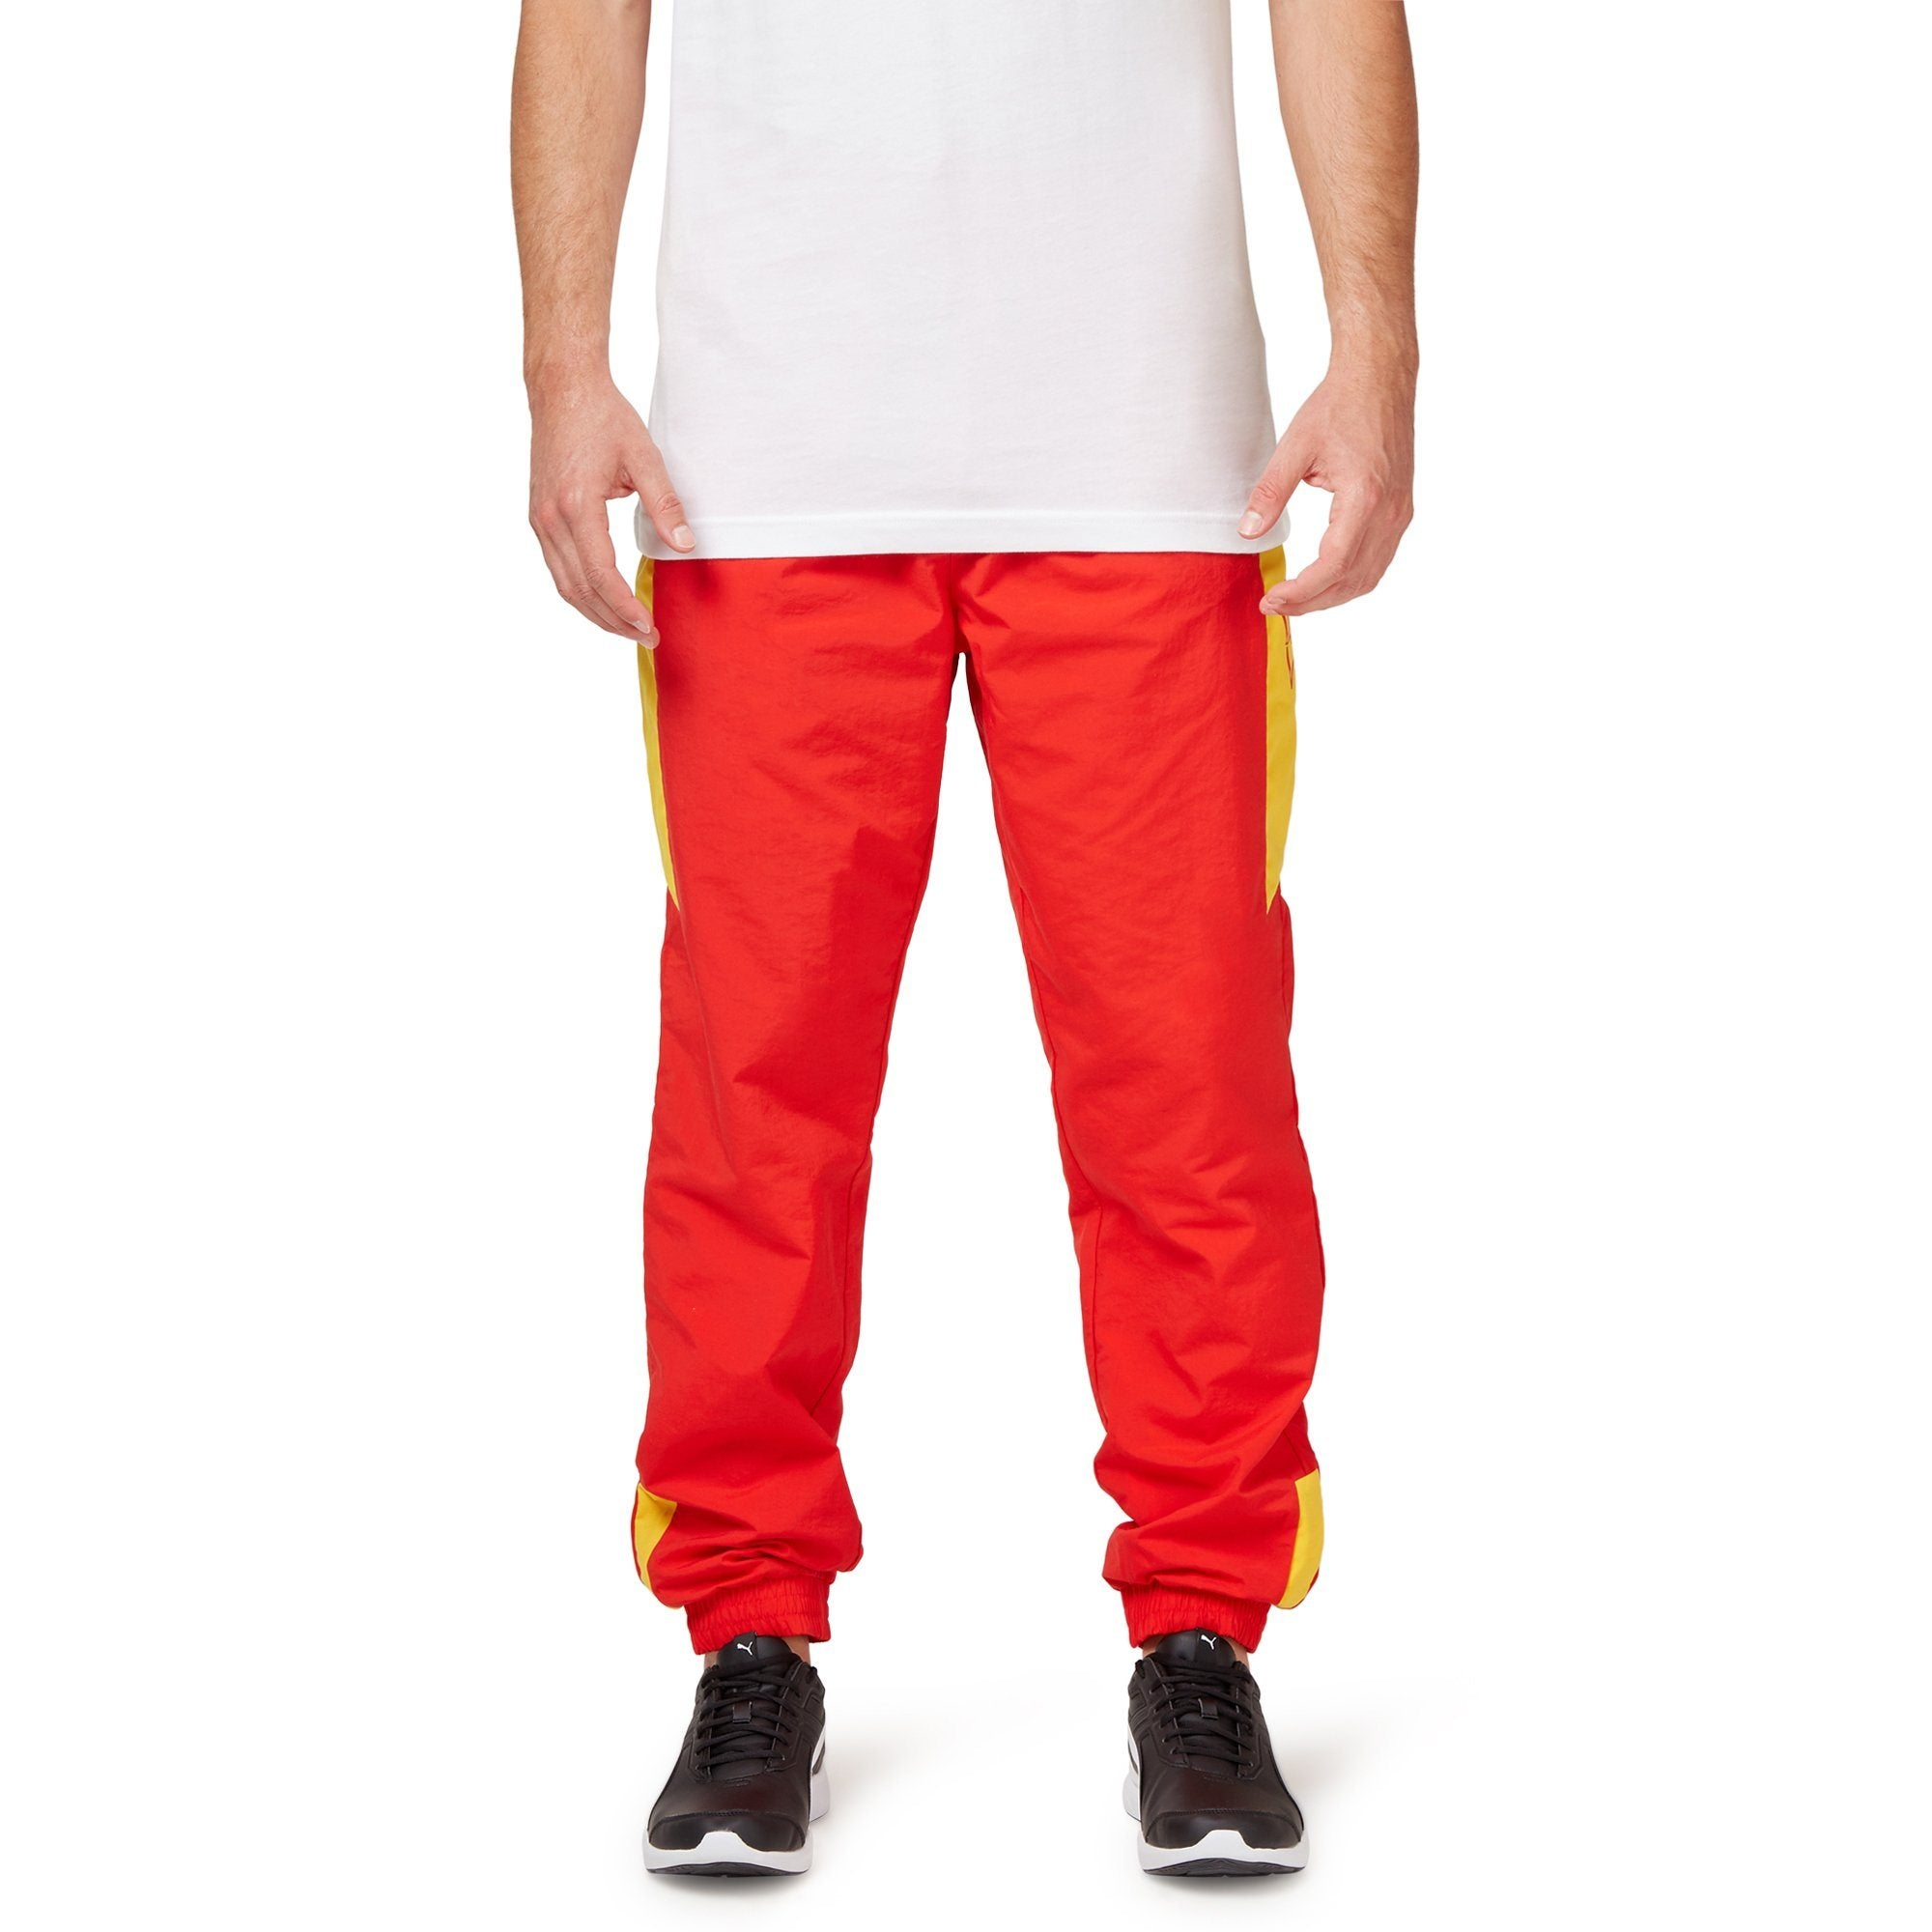 Puma Men's Homage to Archive Trackpants - Red Apparel Puma